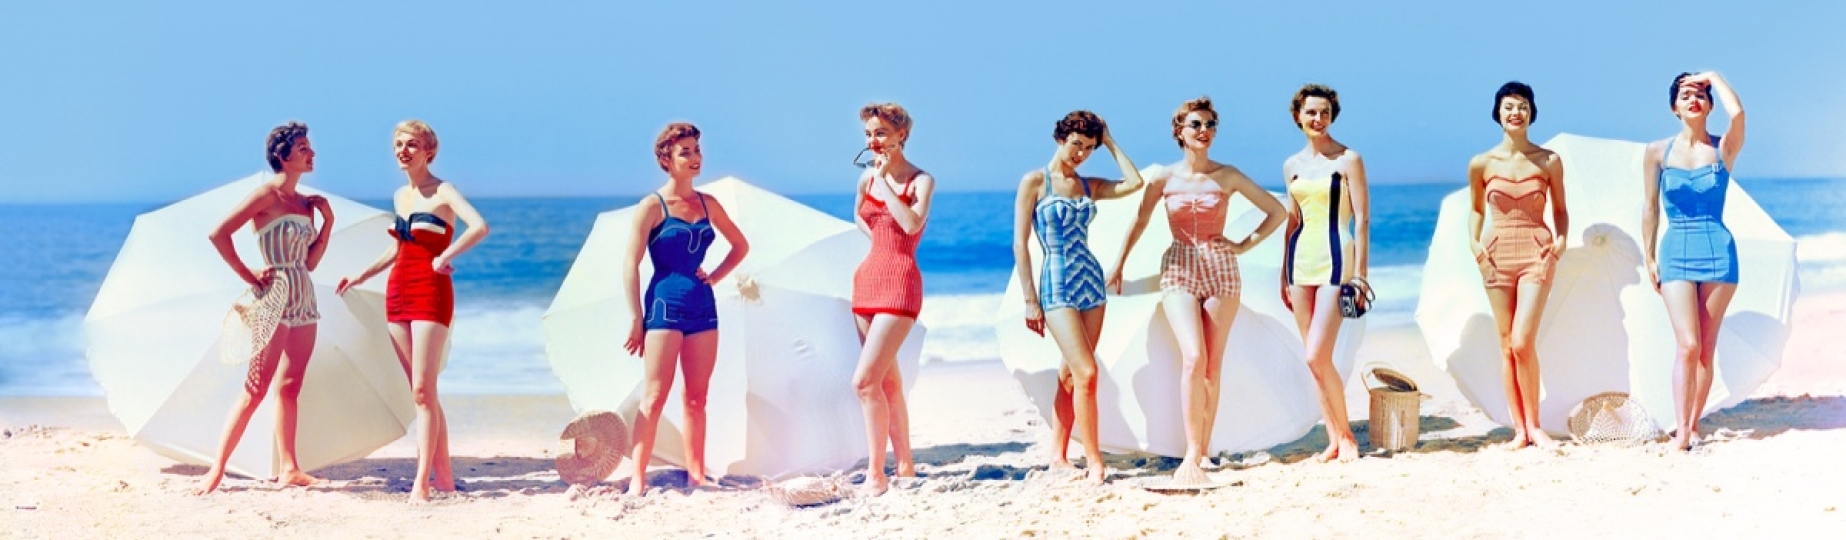 Fashions in Chromspun swimsuits 1954 © Peter Gales